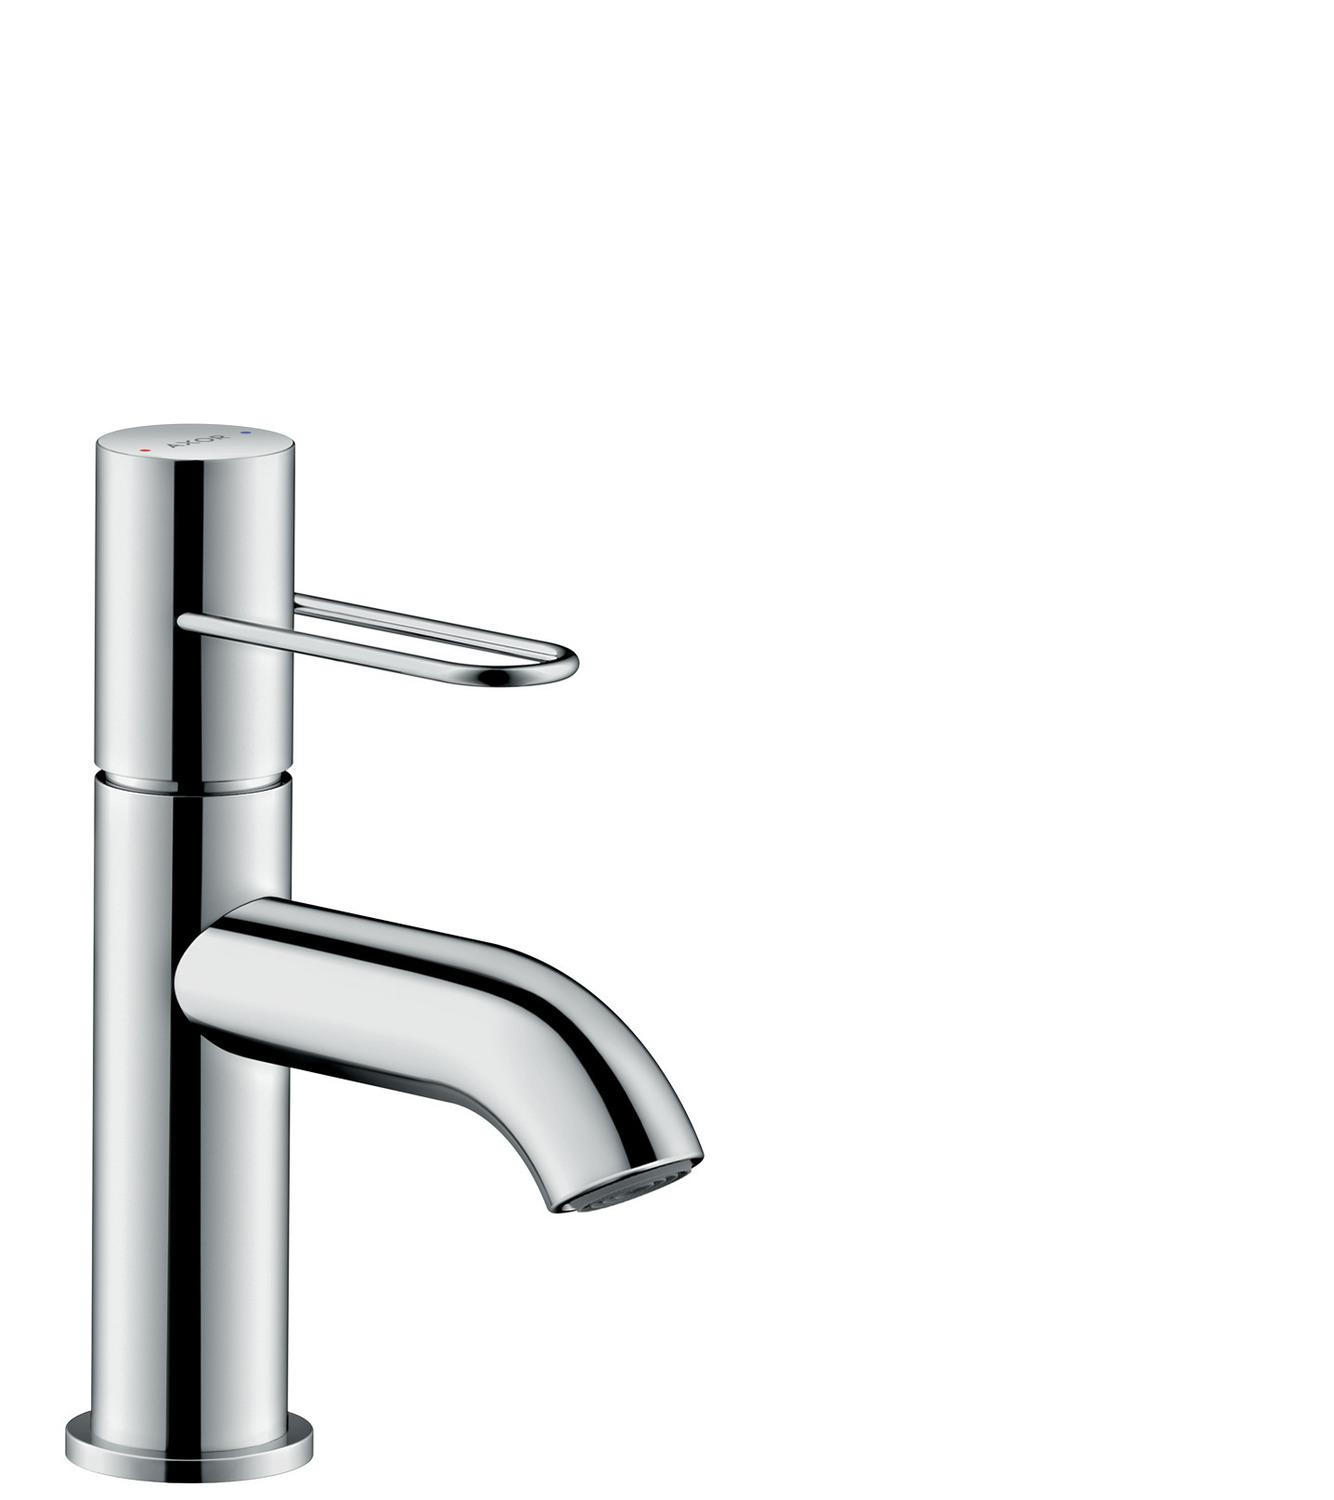 Chrome Single lever basin mixer 70 with loop handle and waste set